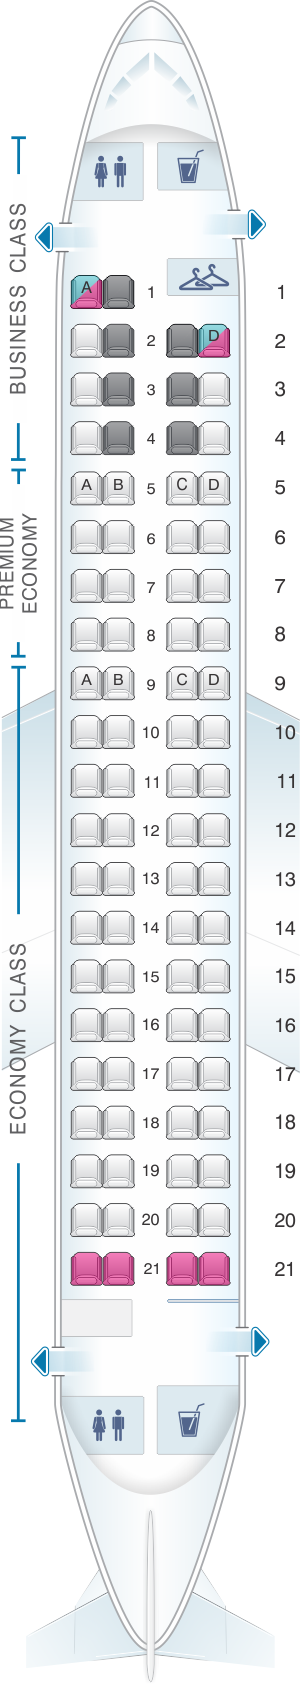 Seat map for LOT Polish Airlines Embraer 175